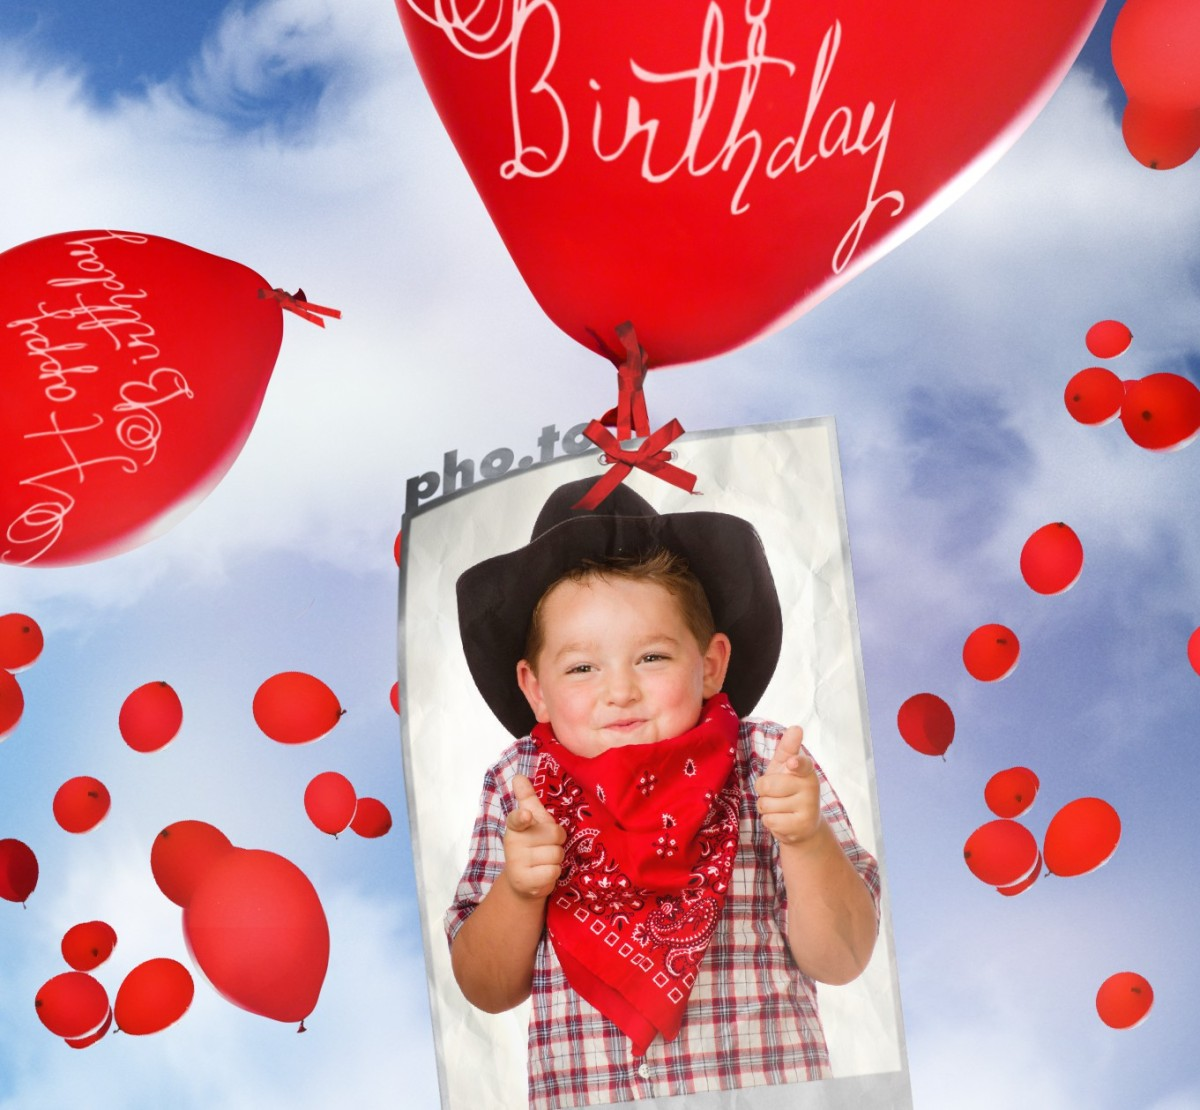 Birthday Balloons Card Maker Helps Send Greetings To A Friend Ecard With Printable Template